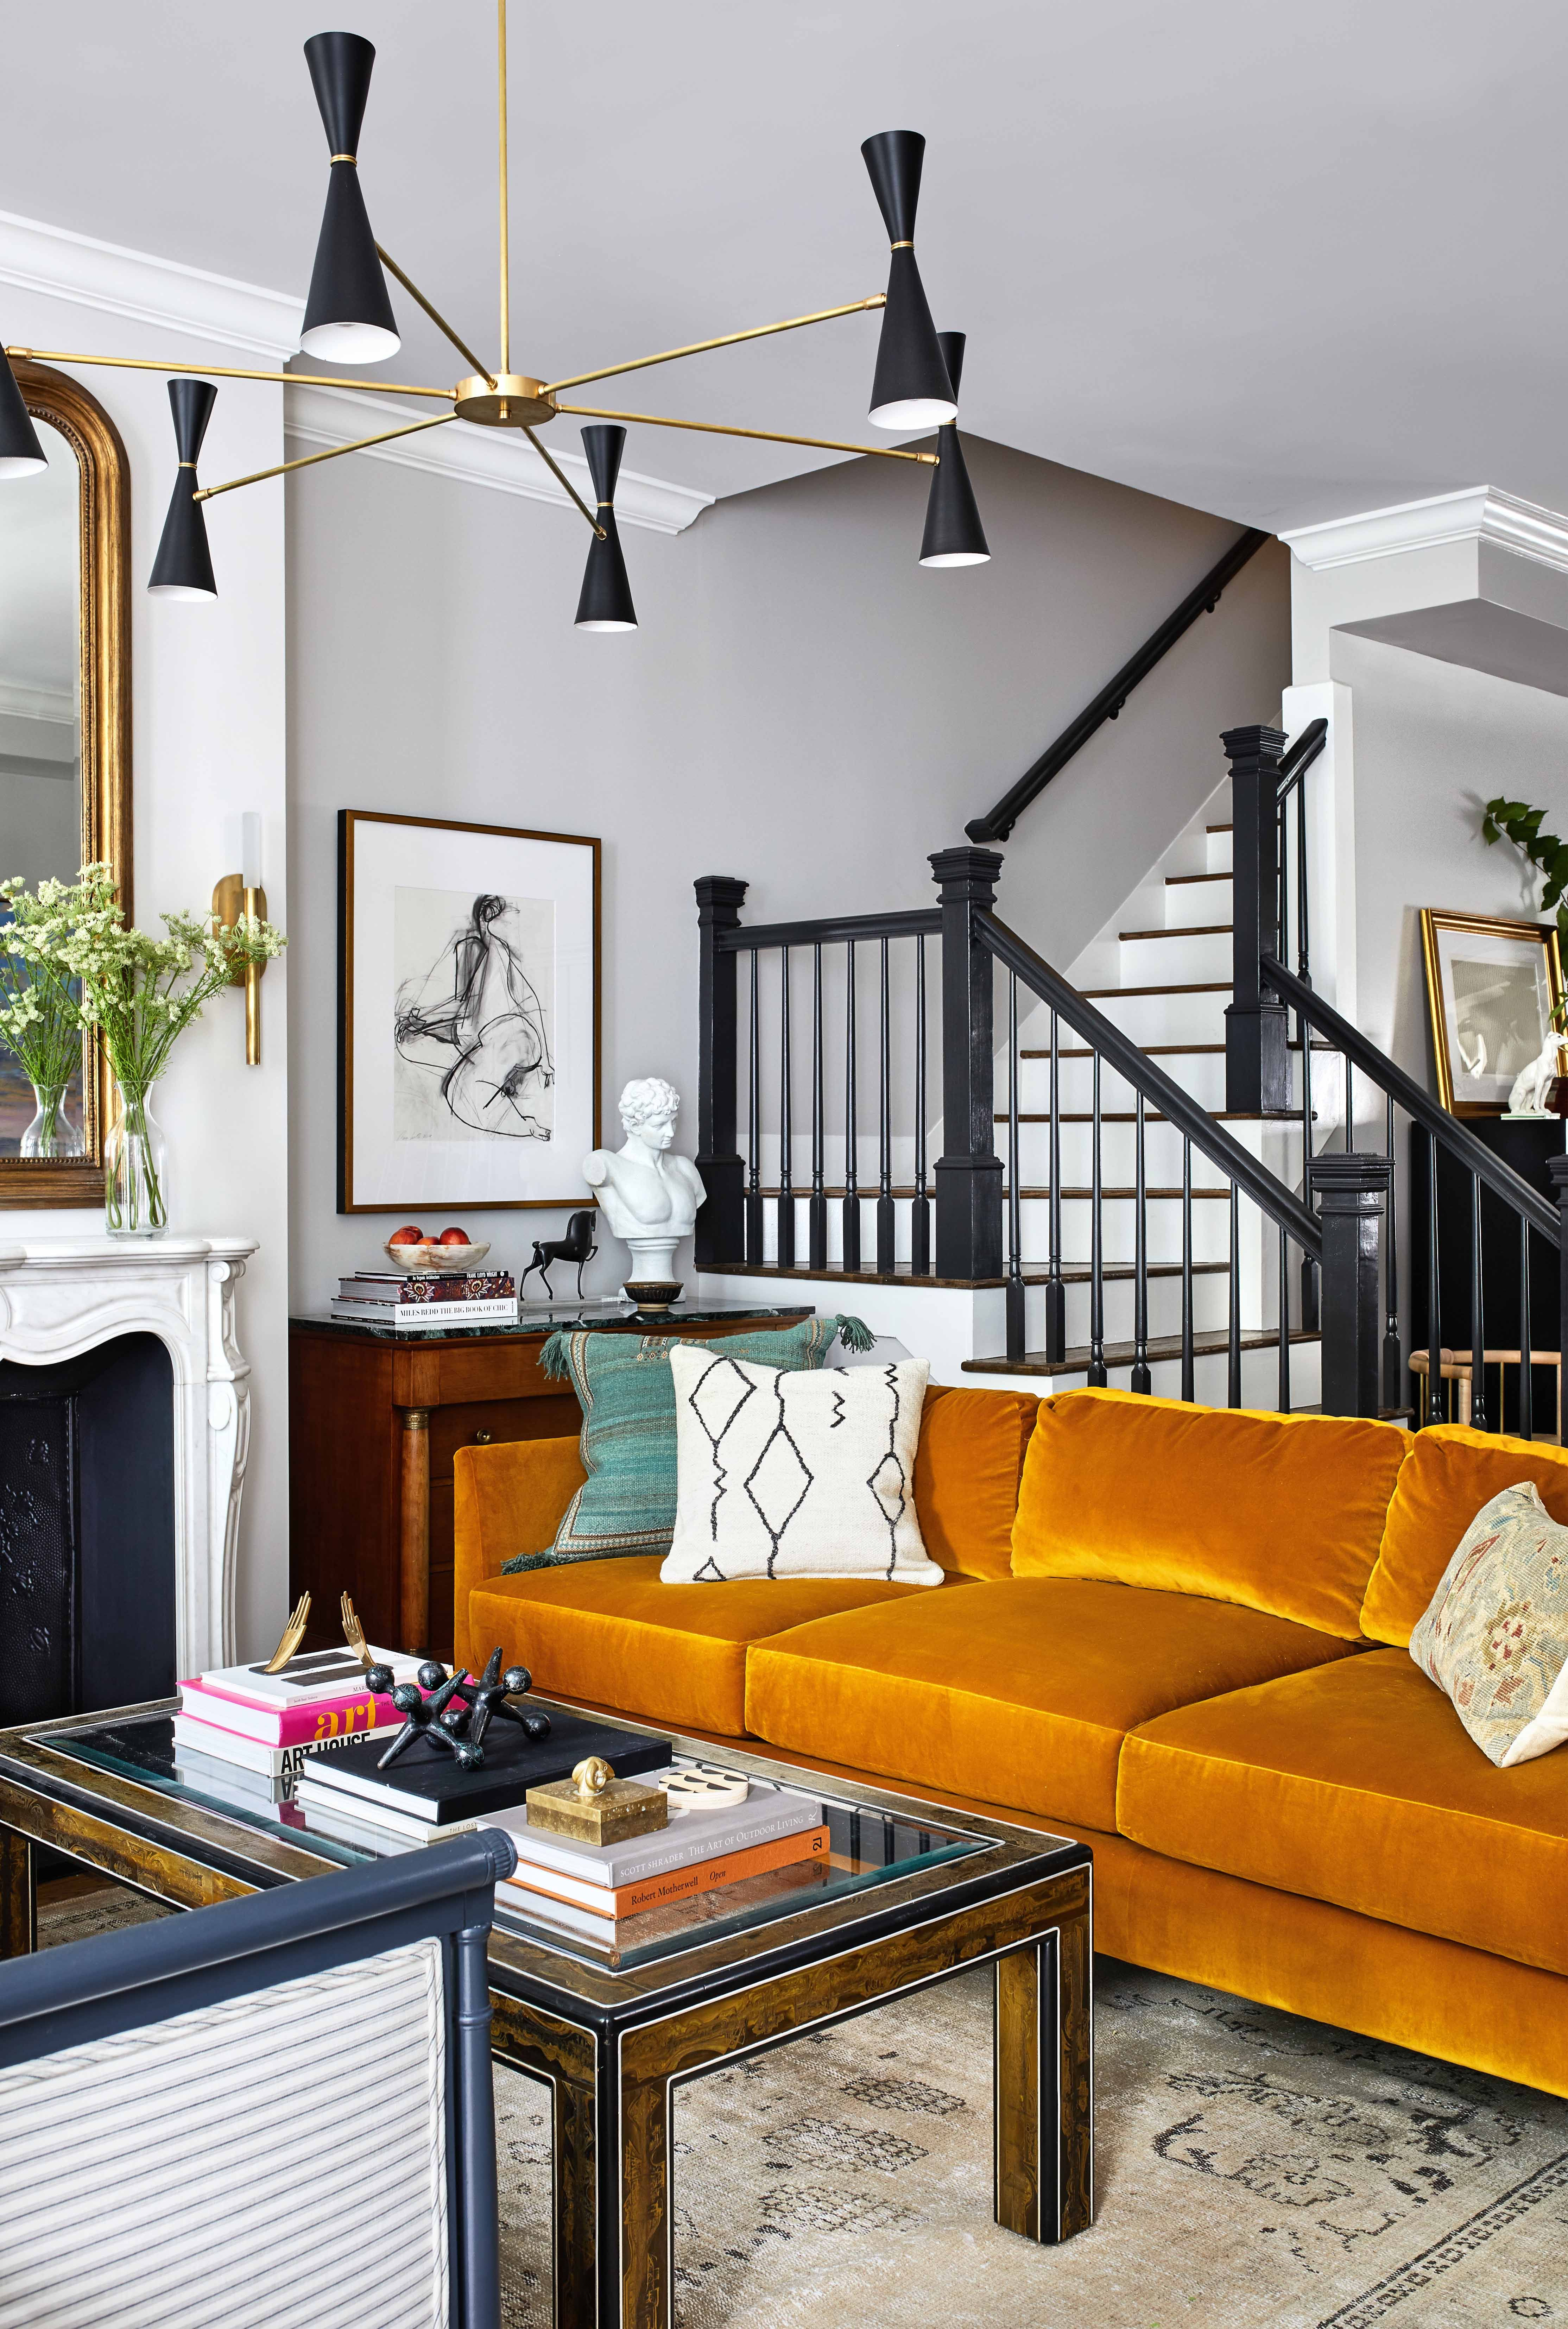 Modern Meets Traditional In This Historic D C Home A Washington D C Home By Zoe Feldman